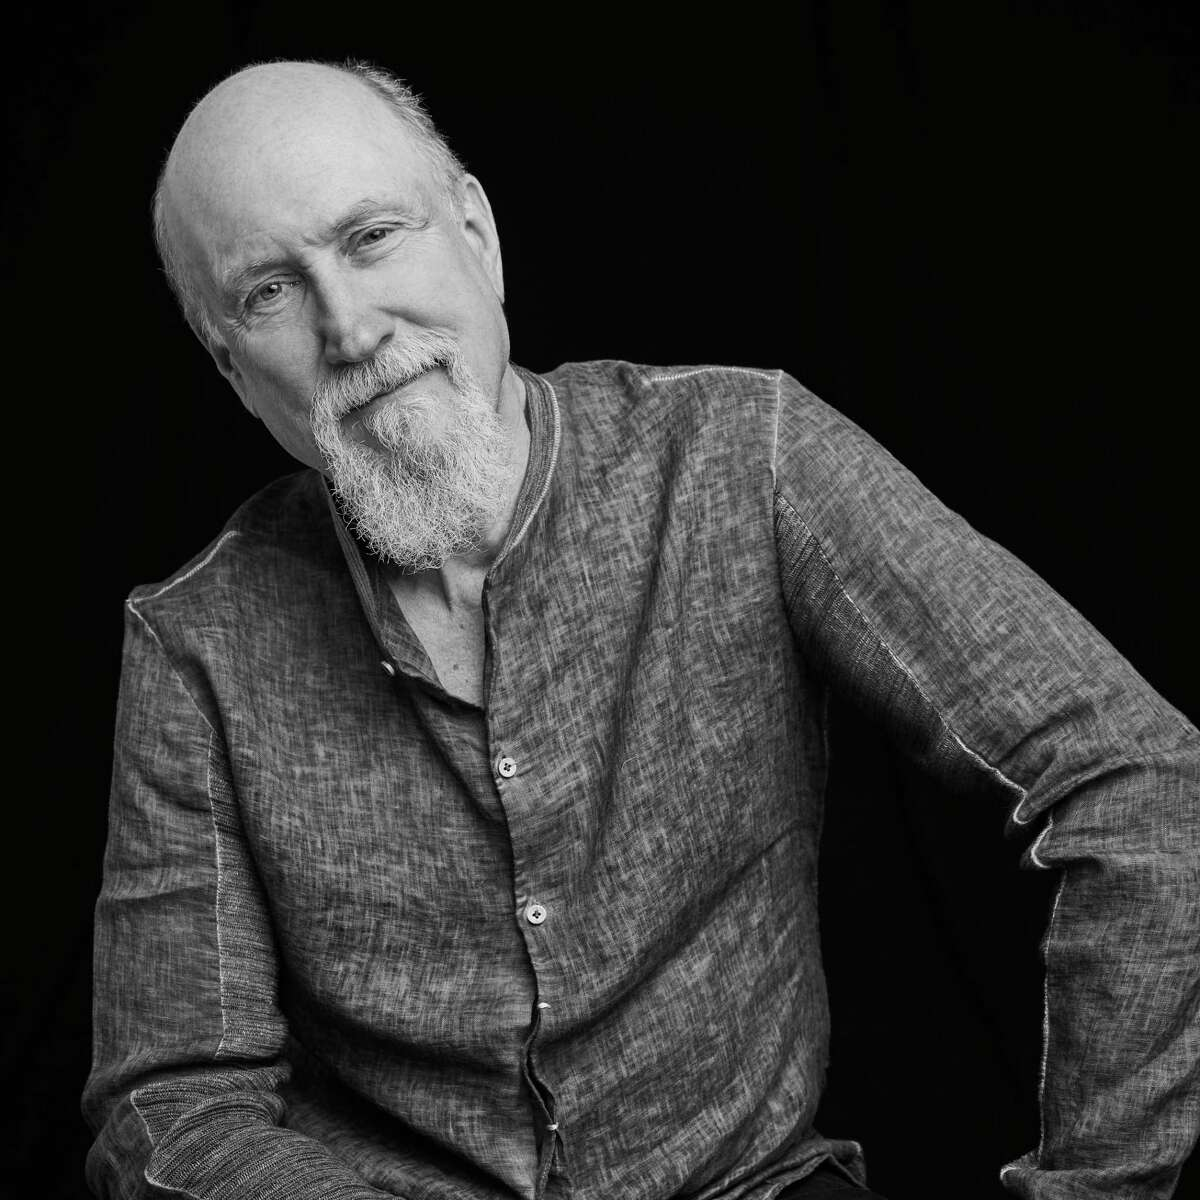 Wilton native and Grammy-winning musician John Scofield will perform at the Ridgefield Playhouse on April 24.